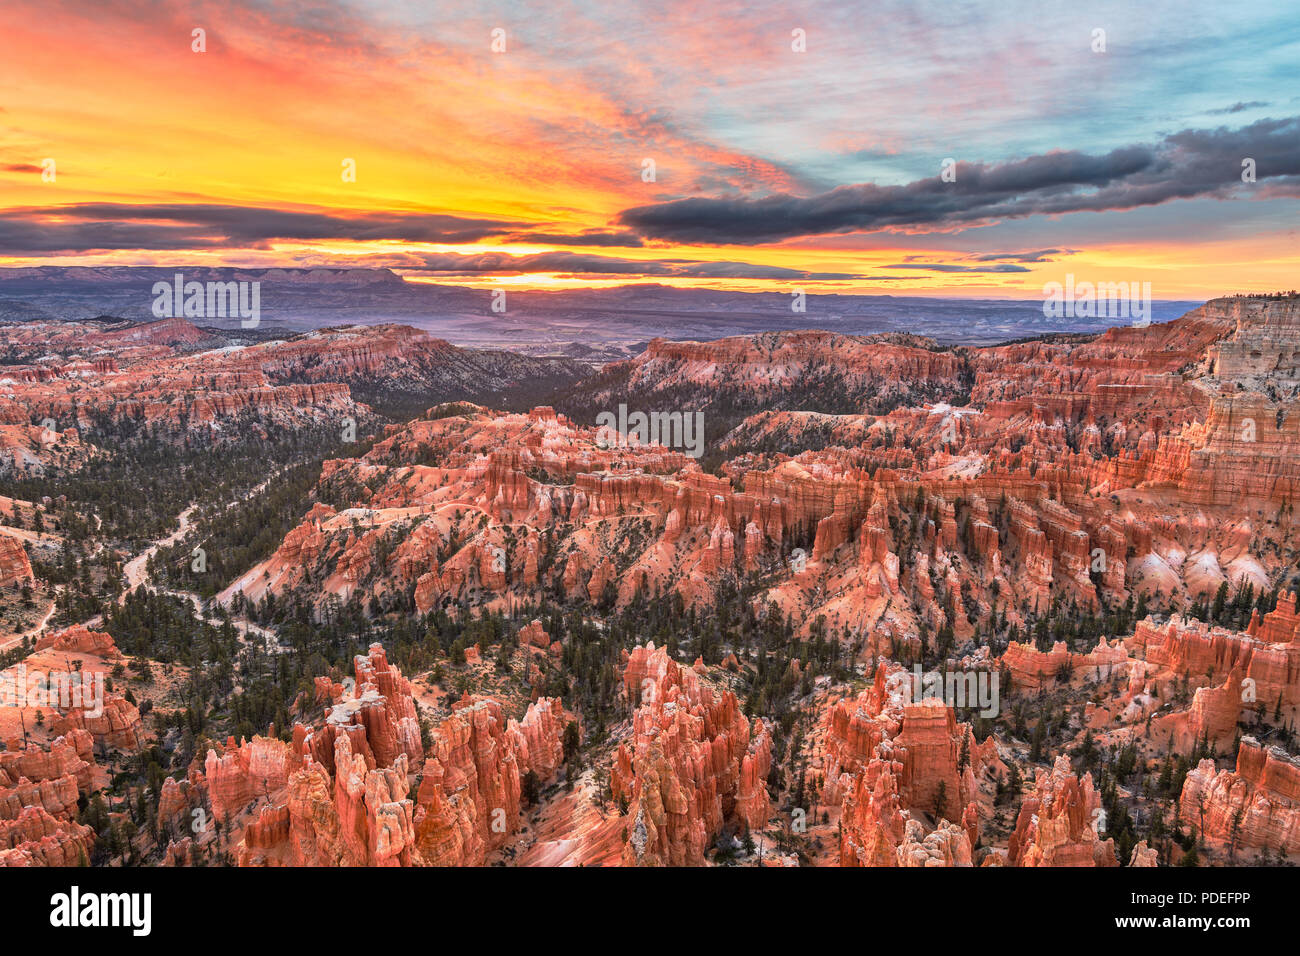 Bryce Canyon National Park, Utah, USA at dawn. - Stock Image